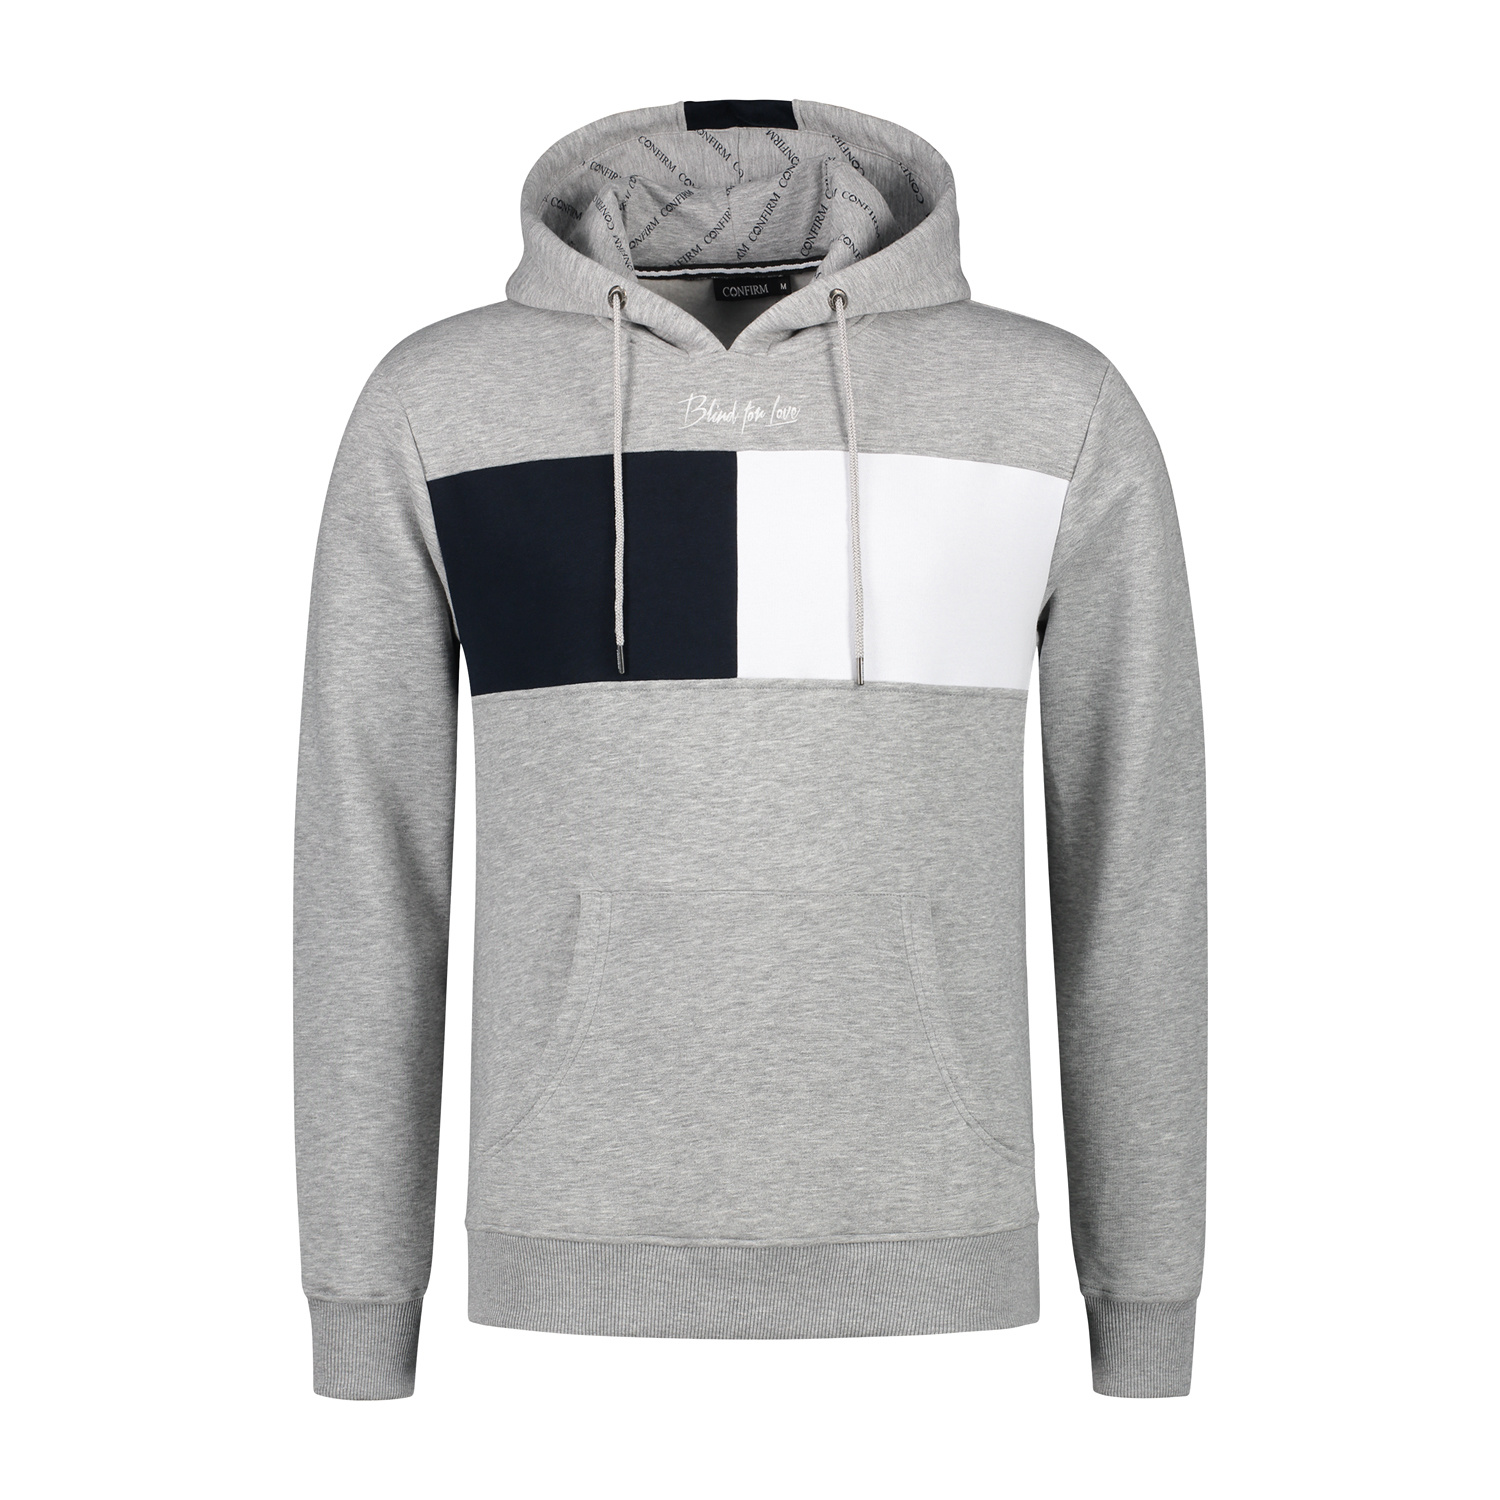 Confirm hoodie blind for love - grey-1